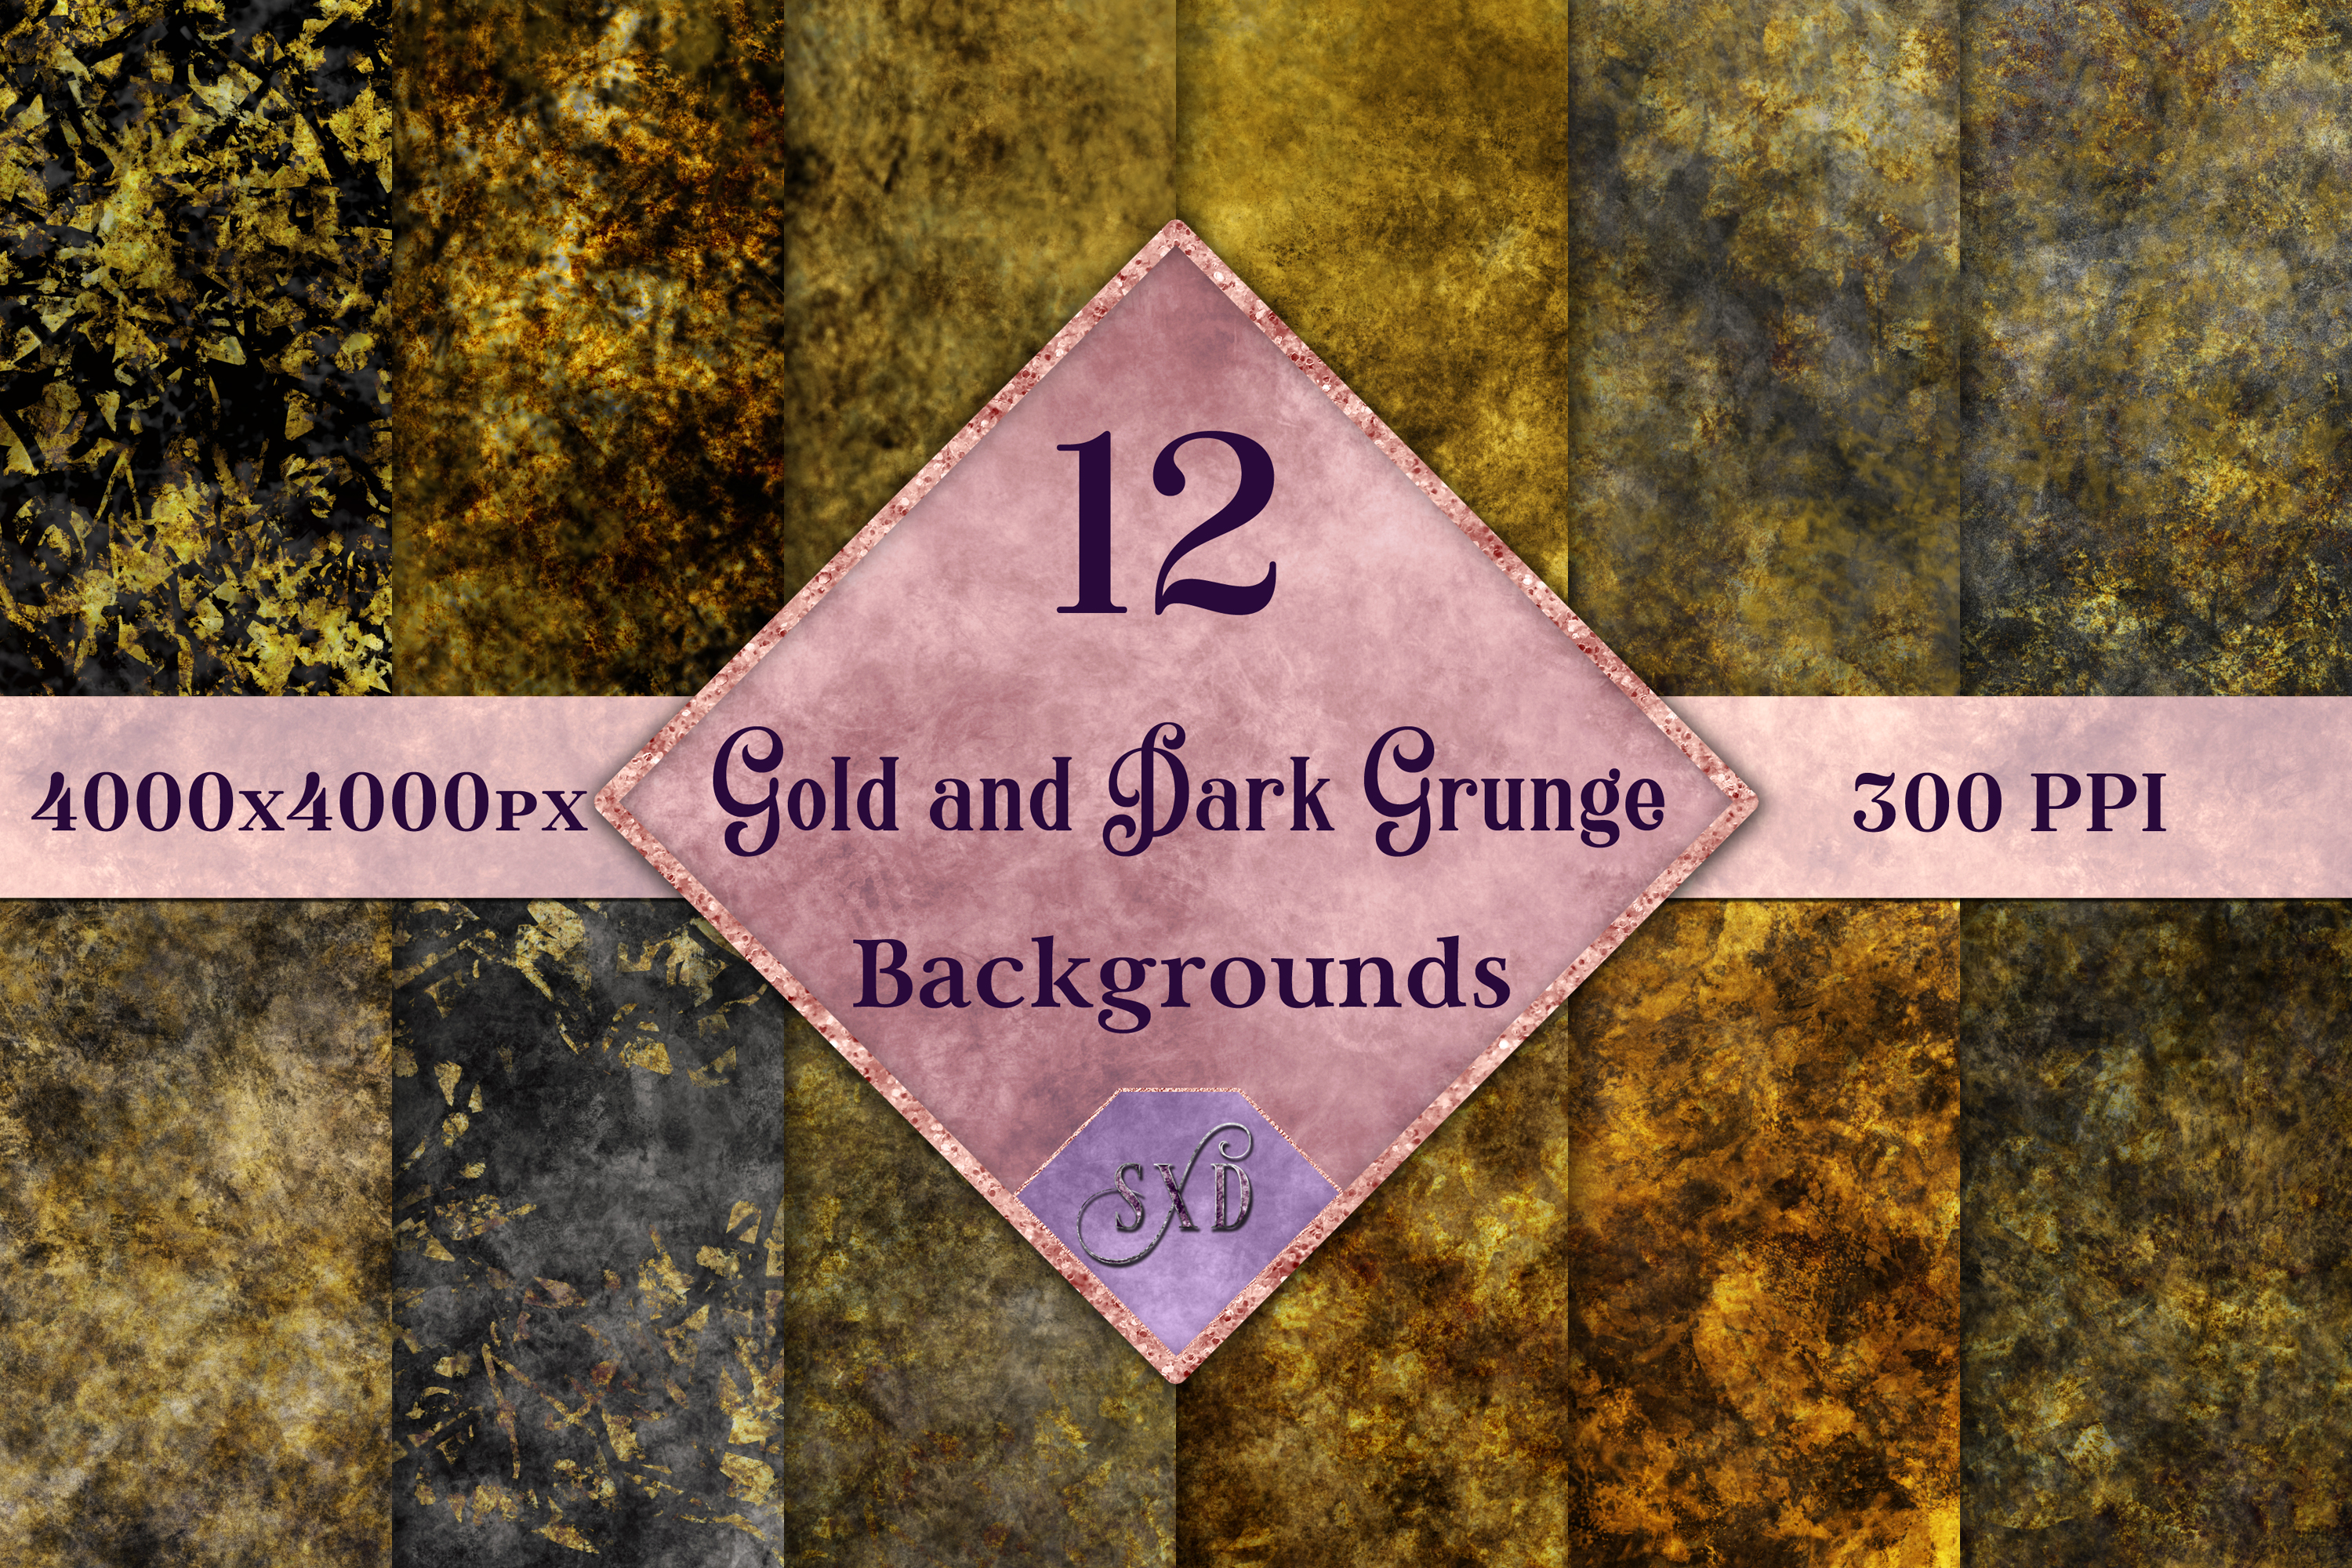 Gold and Dark Grunge Backgrounds - 12 Image Textures Set example image 1